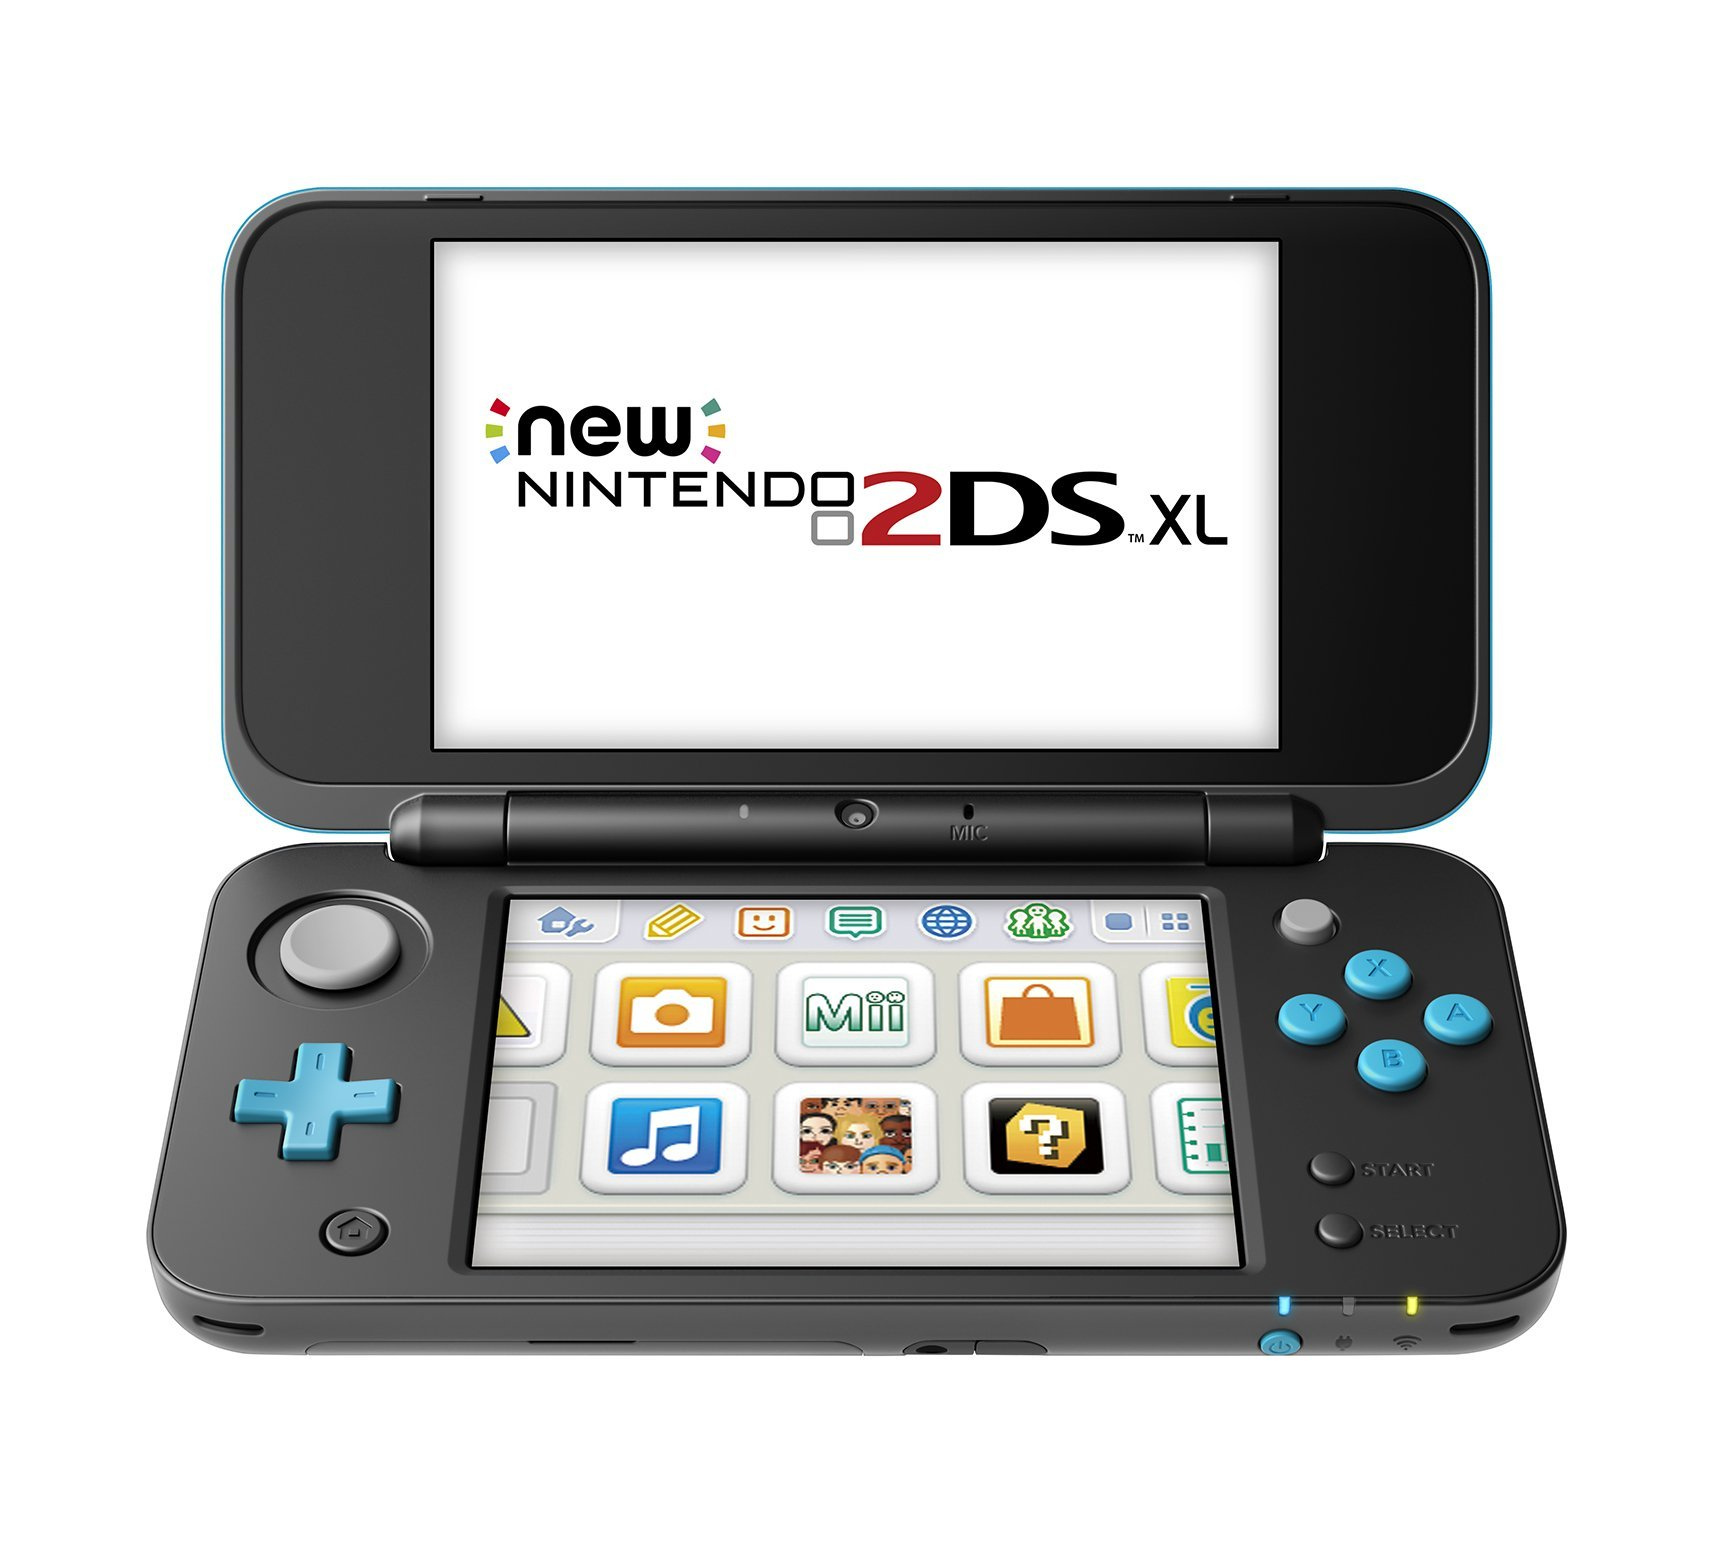 Nintendo New 2DS XL - Black + Turquoise (Certified Refurbished)